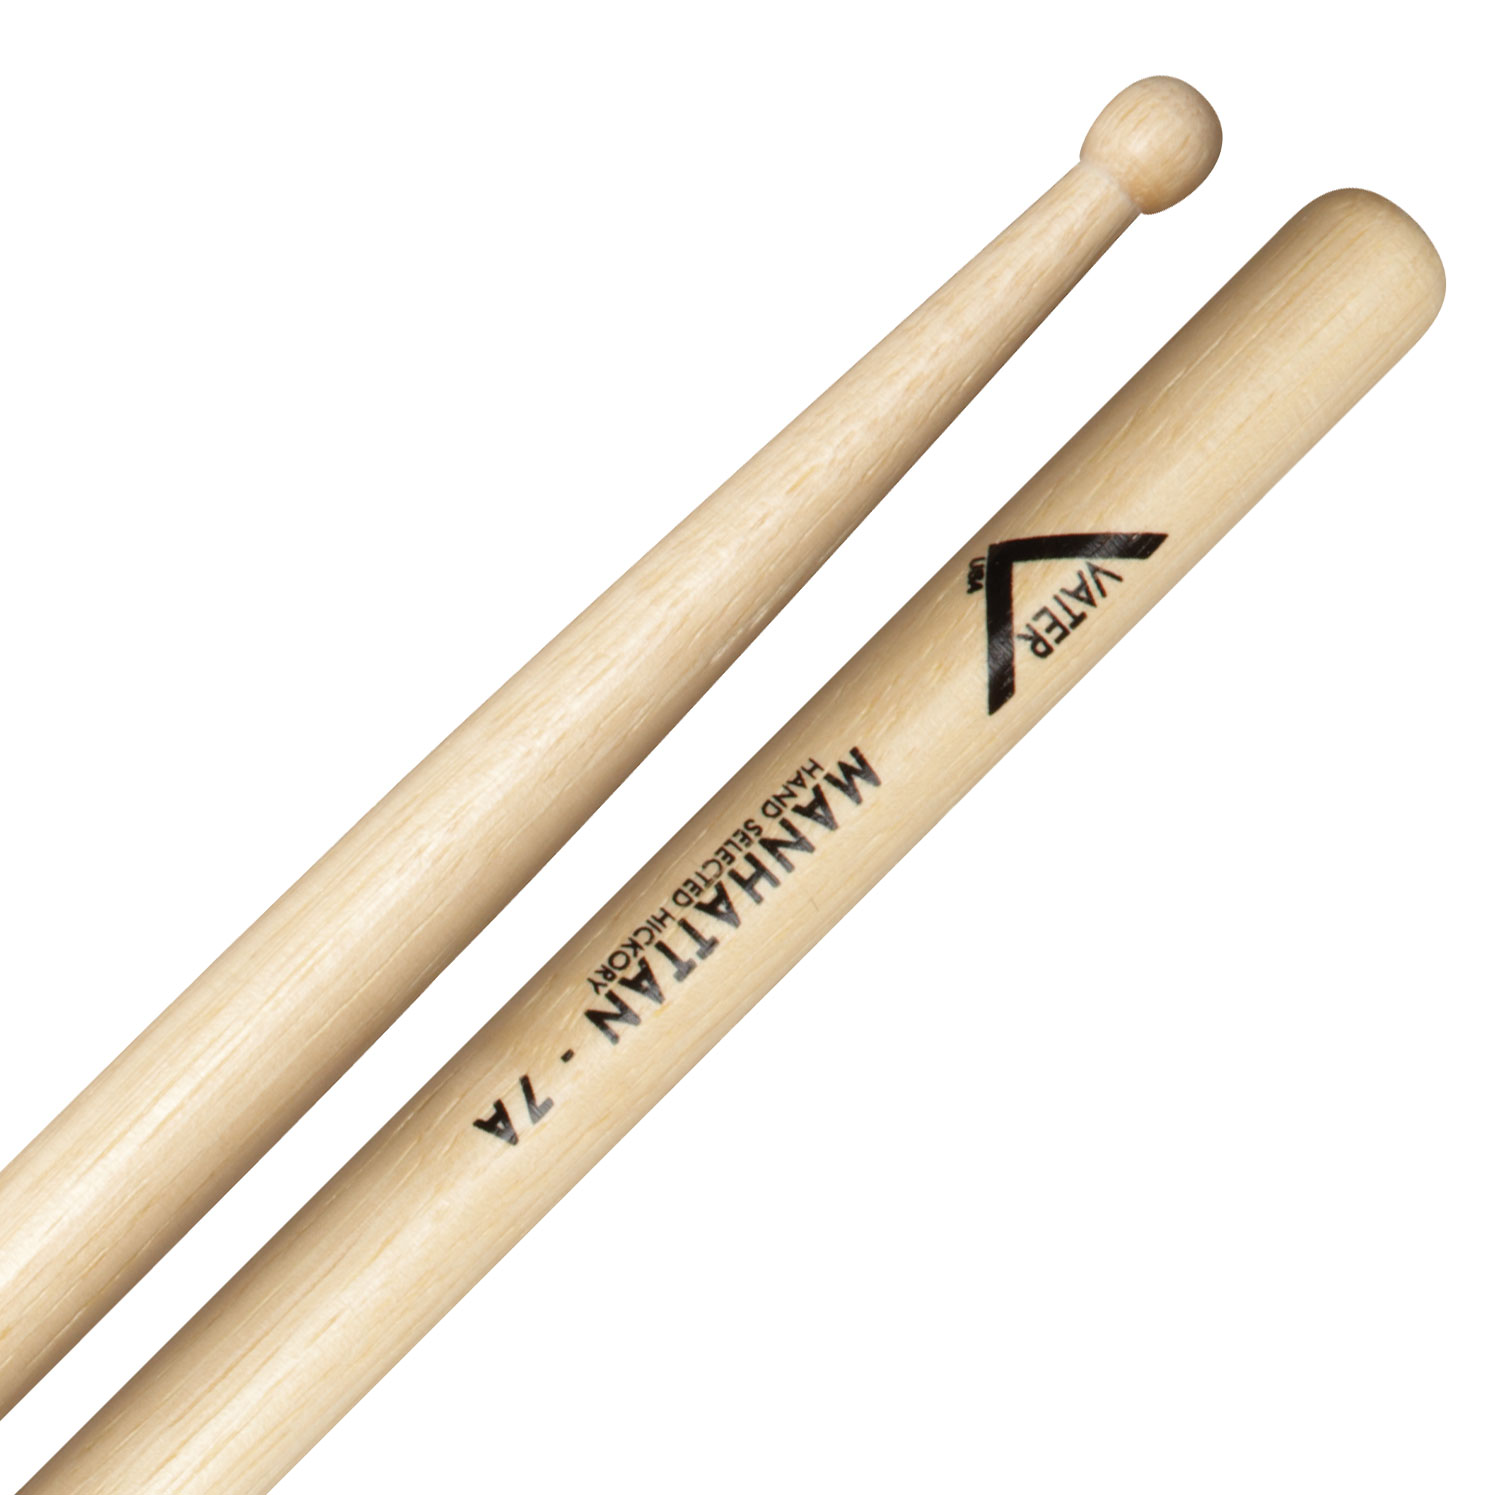 Vater 7A Manhattan Wood Tip Drum Sticks